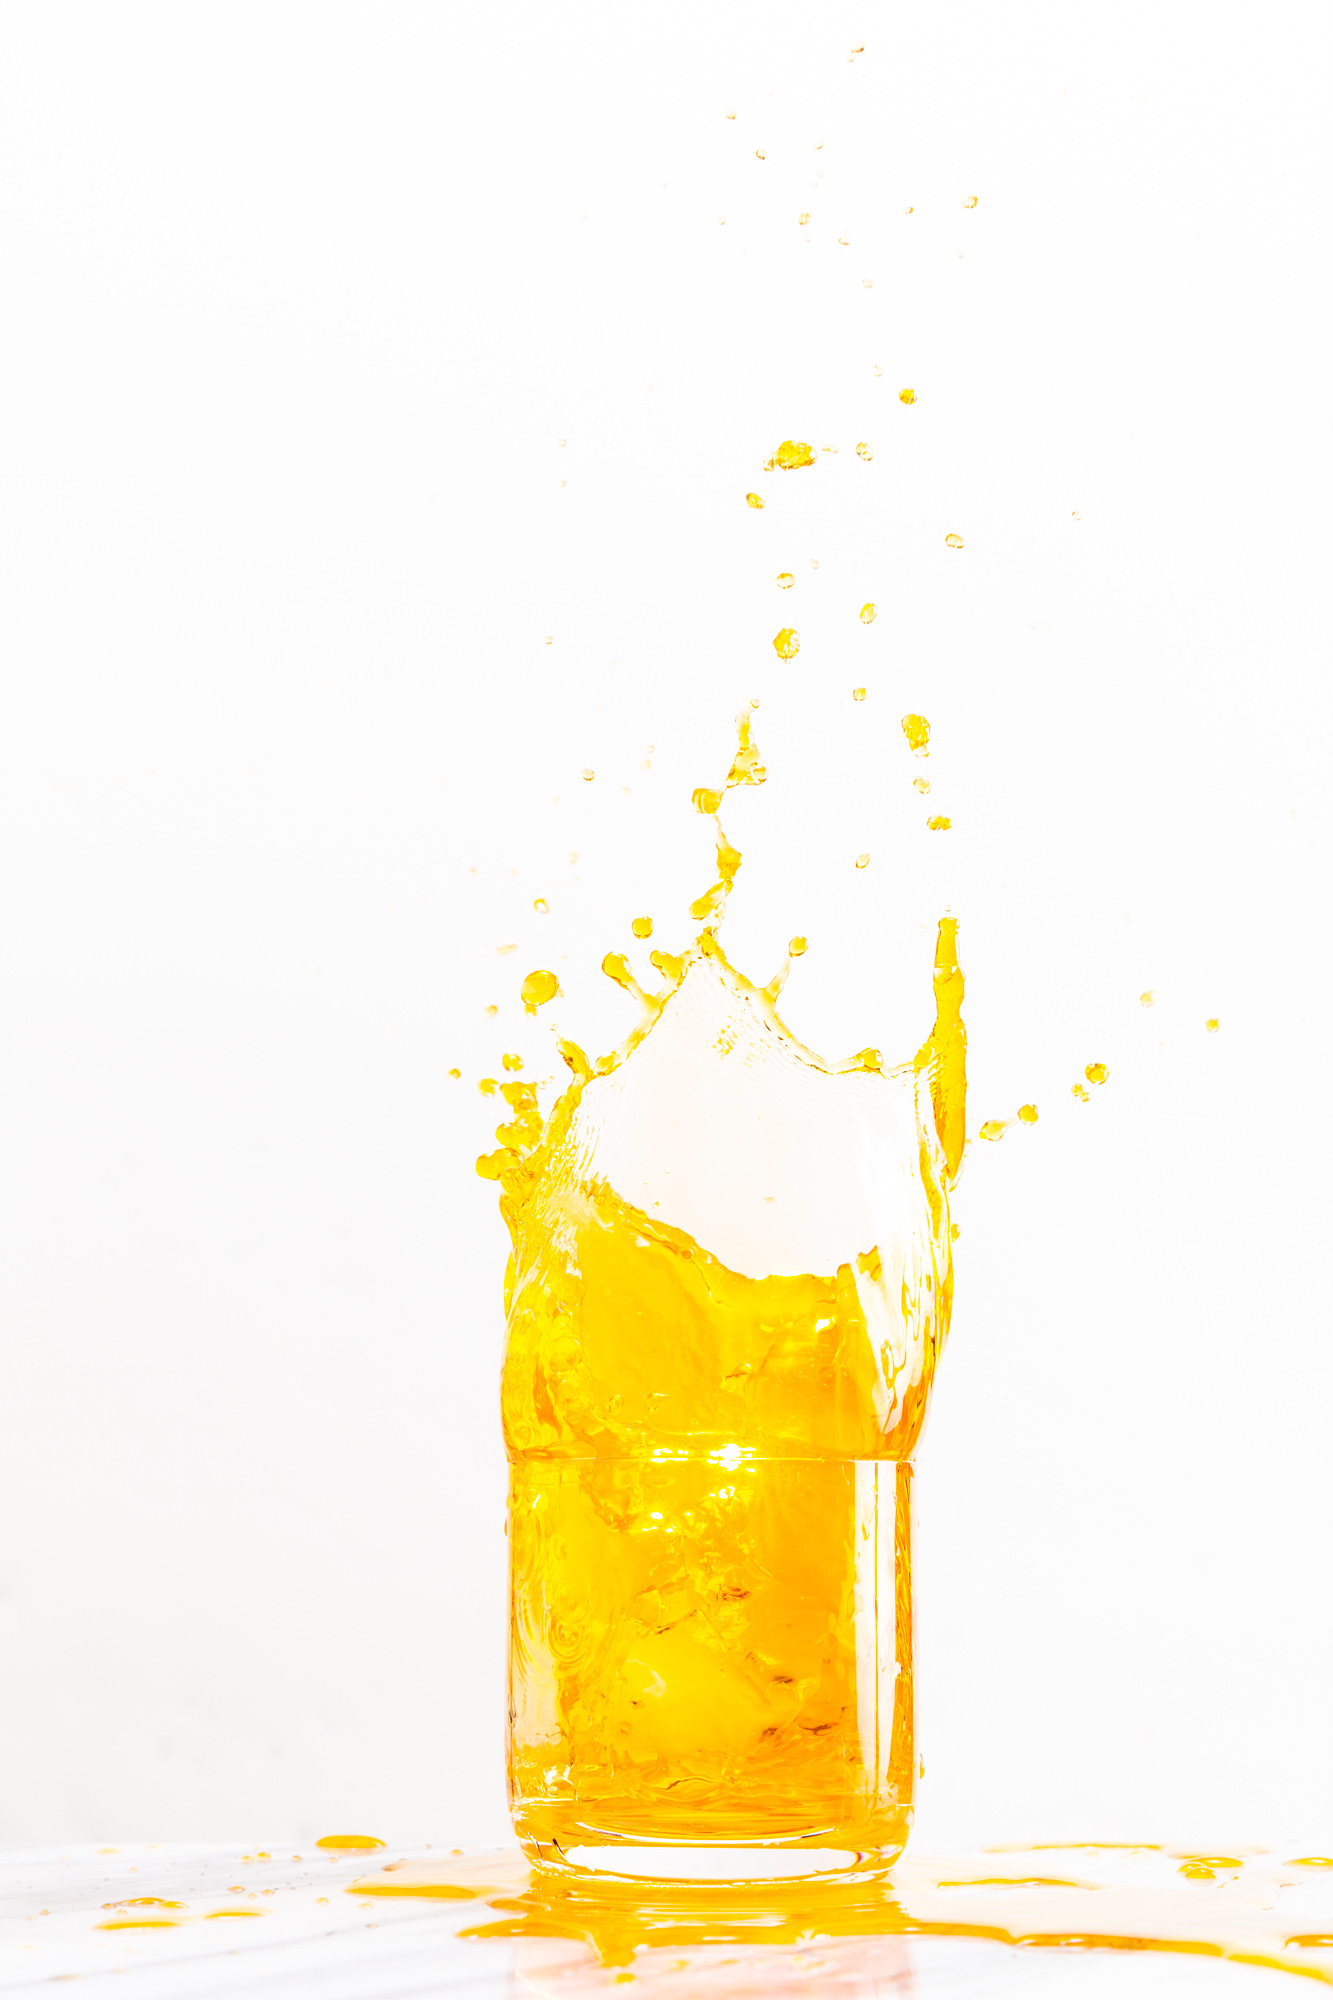 Bright yellow liquid splashes out of a glass against a white background